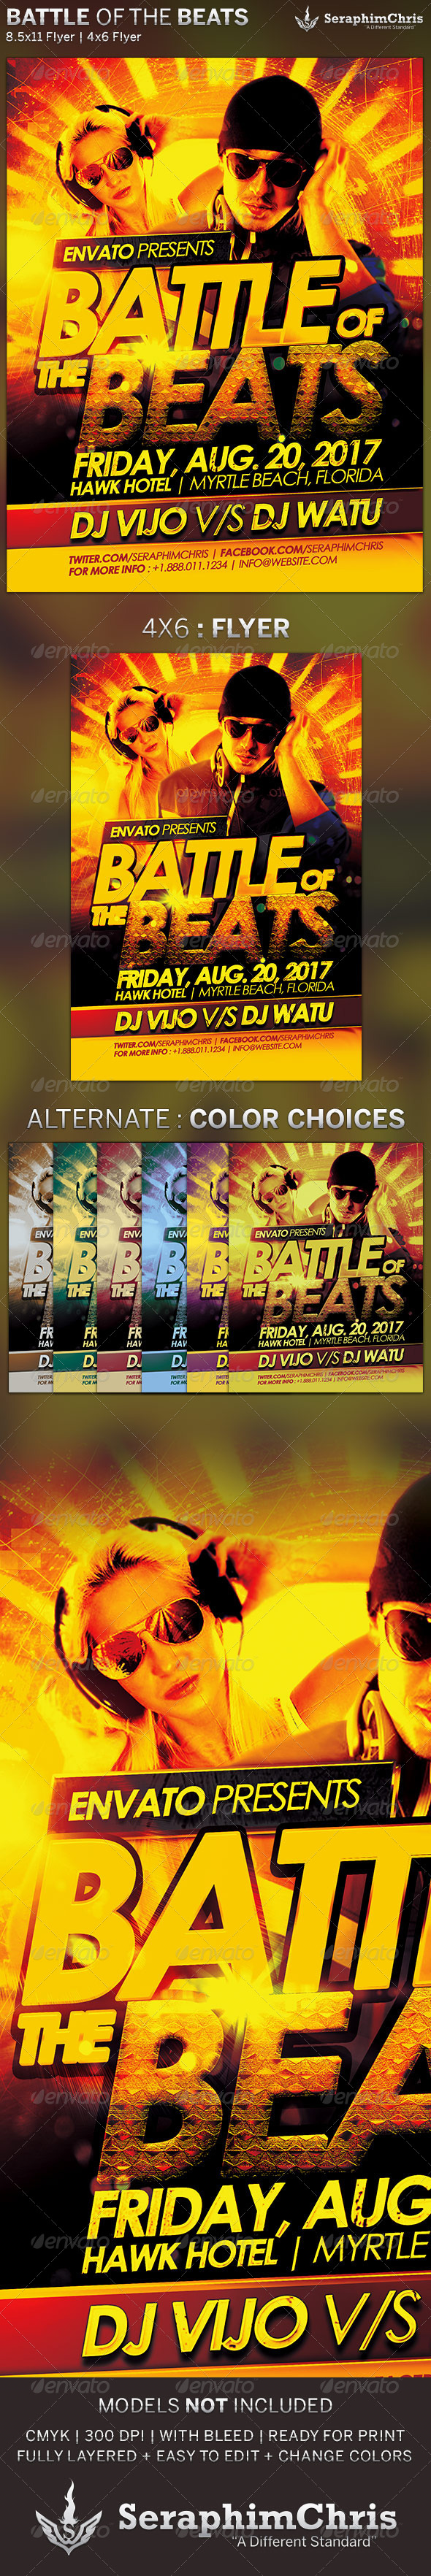 Battle of The Beats Event Flyer Template